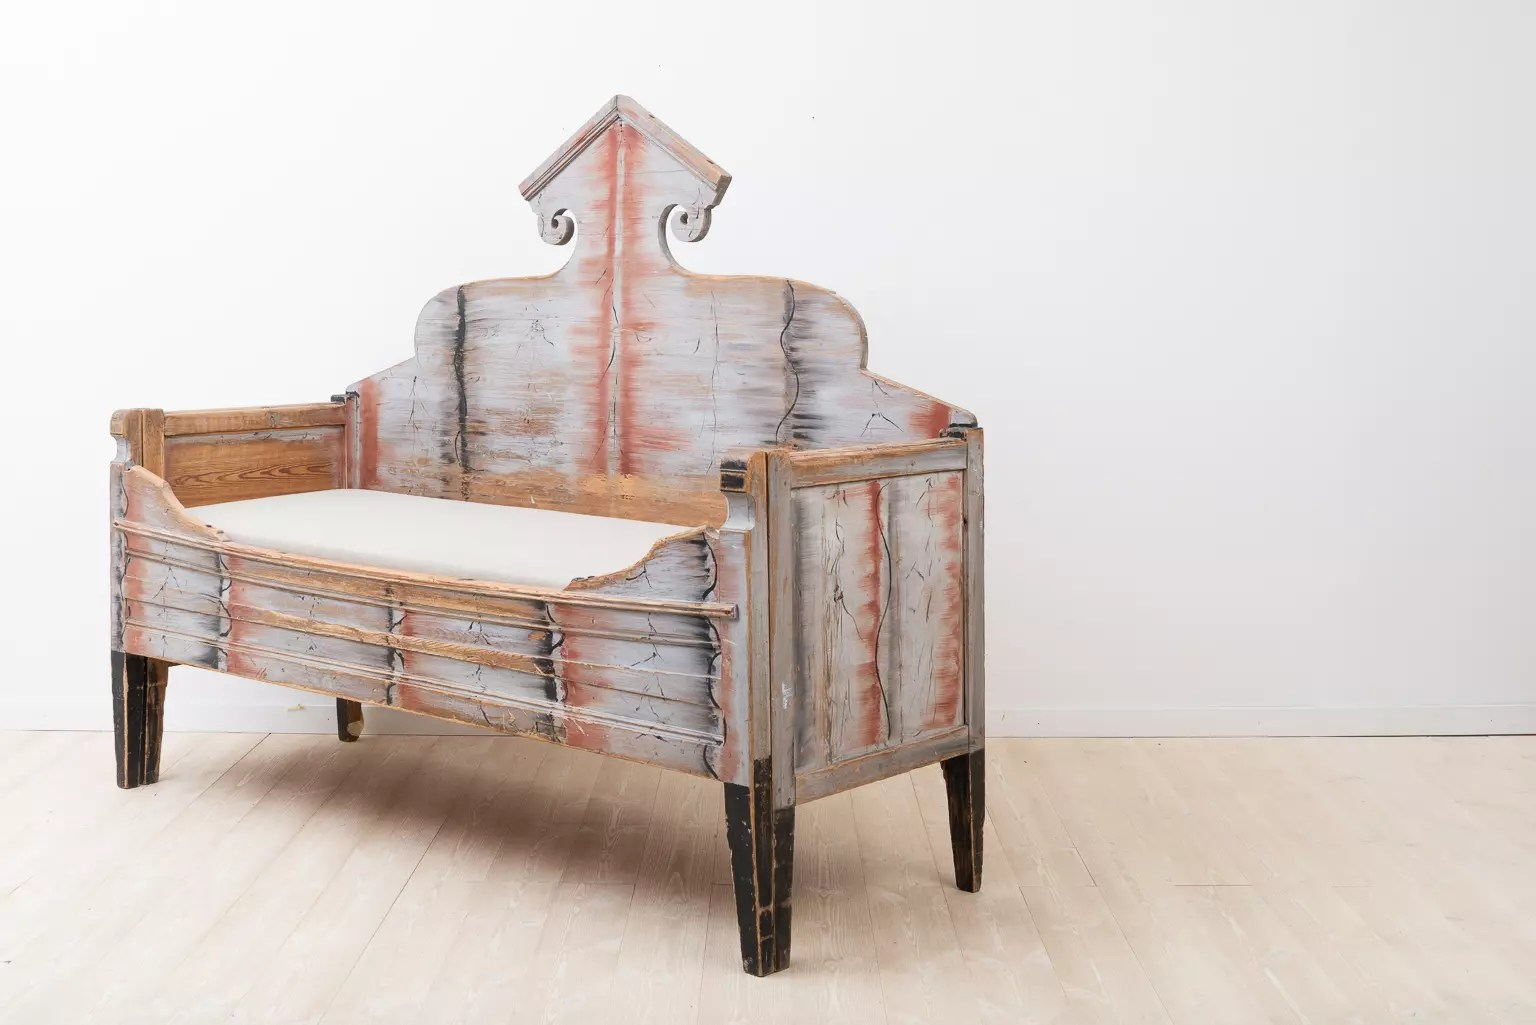 Sofa Bed From Northern Sweden 1790 Frånö Antik